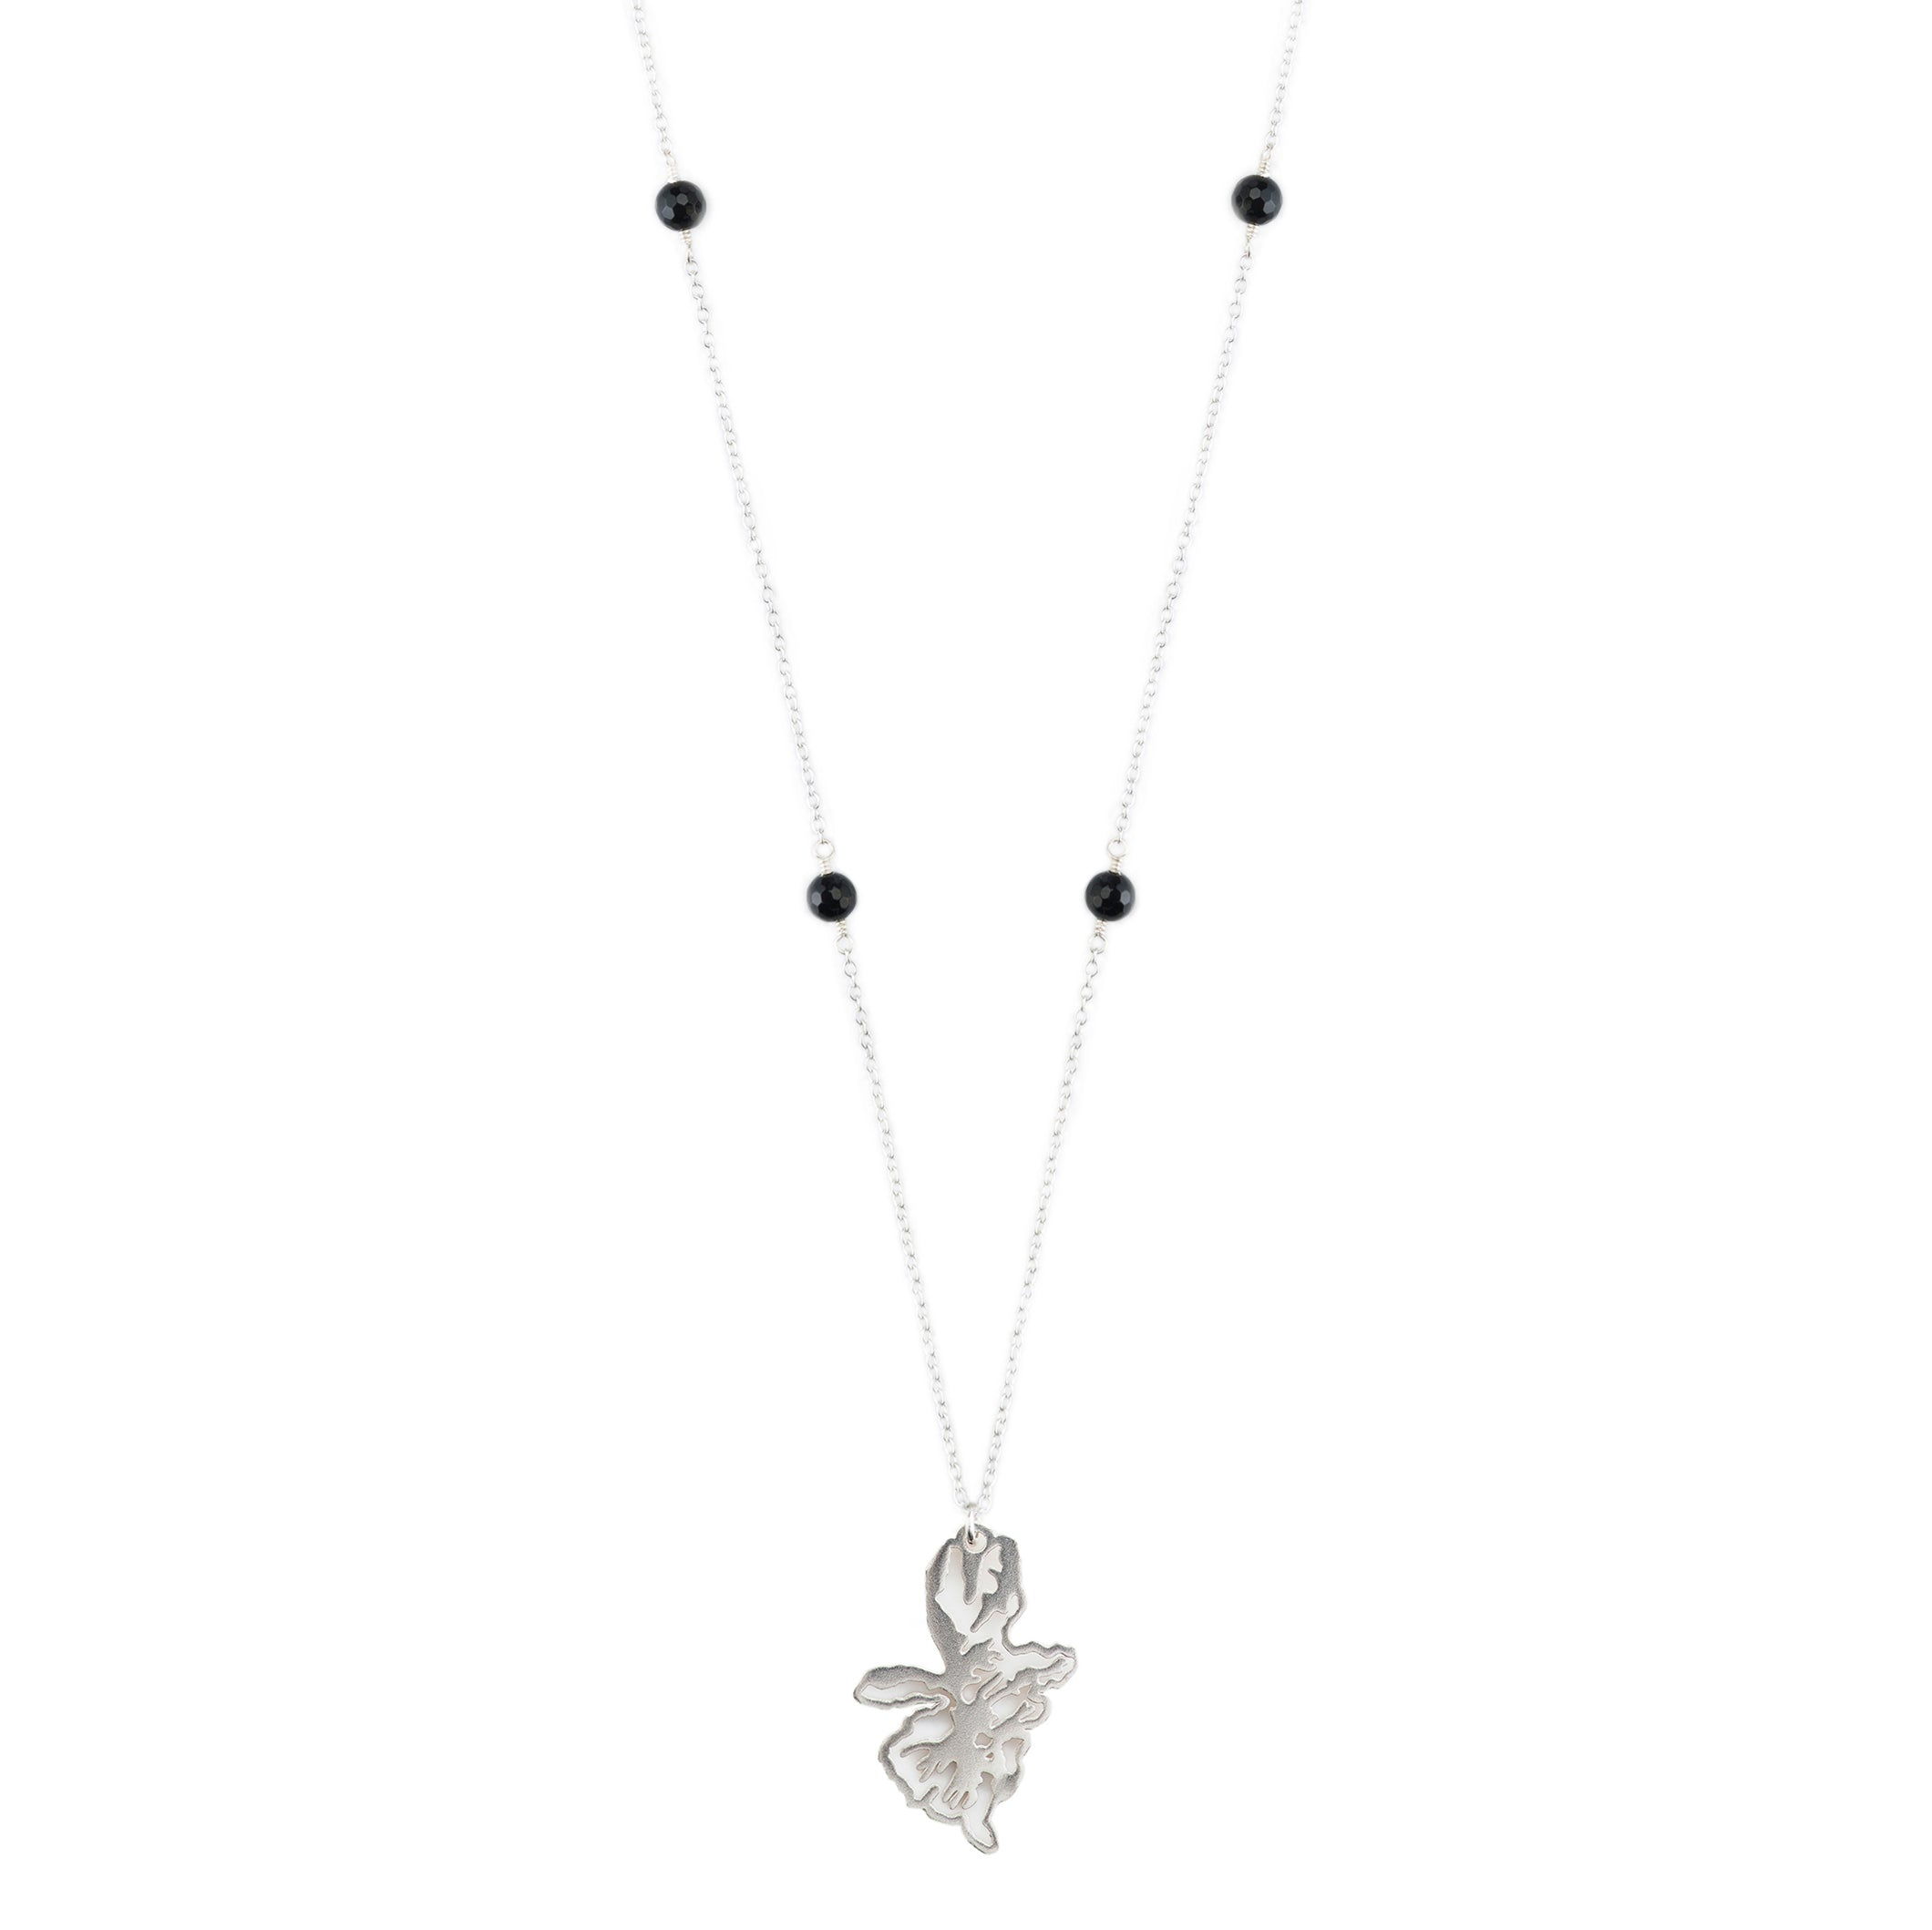 long silver chain necklace with sterling silver chain spinel stones and sterling silver pendant necklace